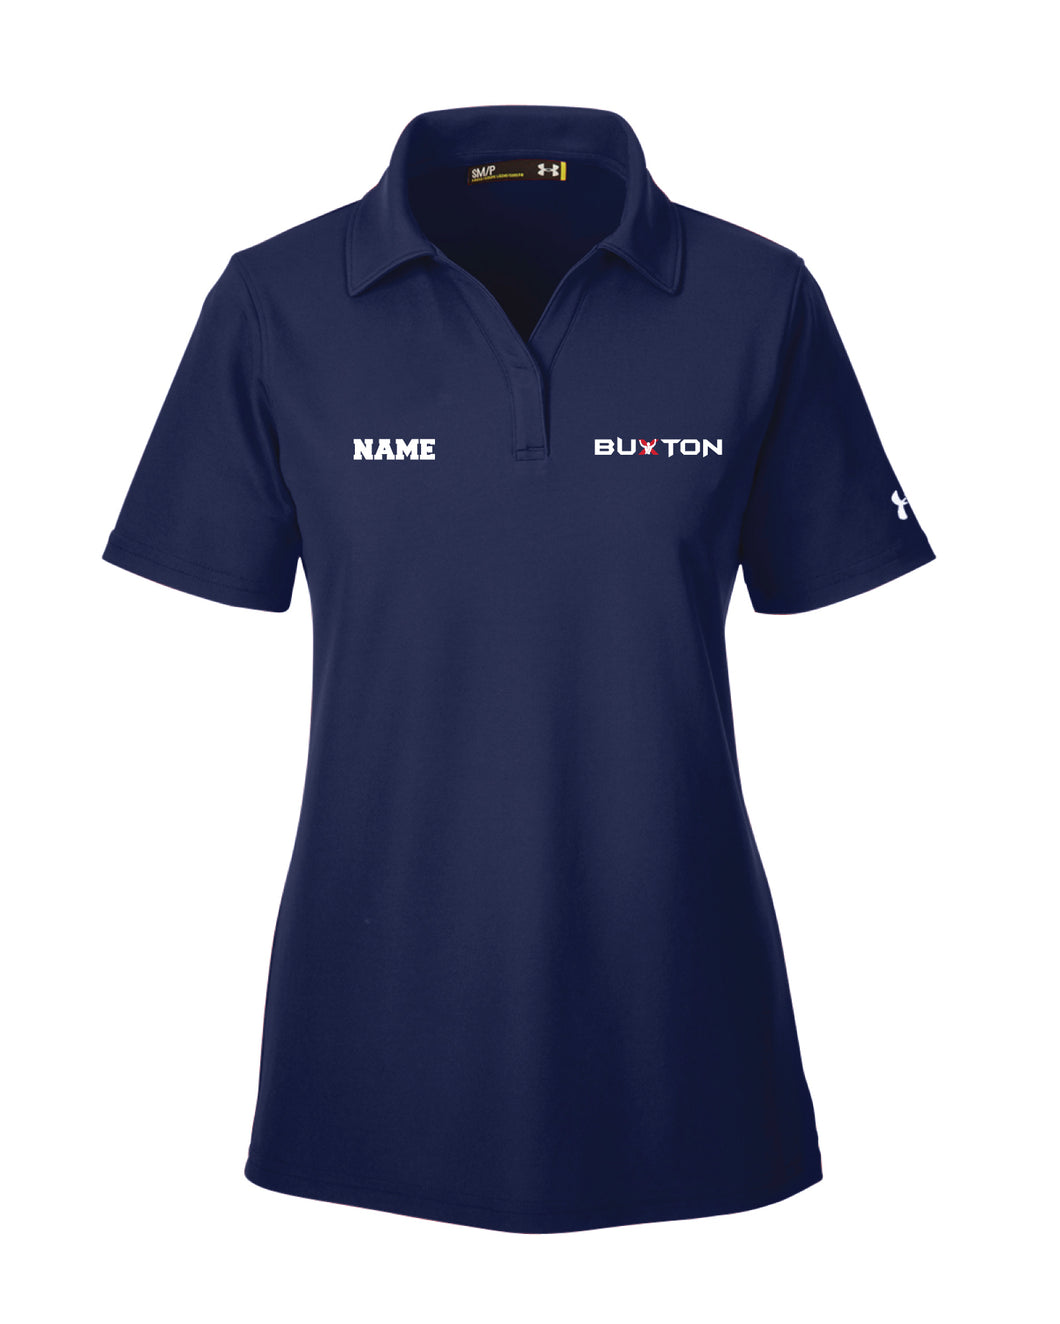 Buxton Under Armour Ladies' Corp Performance Polo - Navy - 5KounT2018